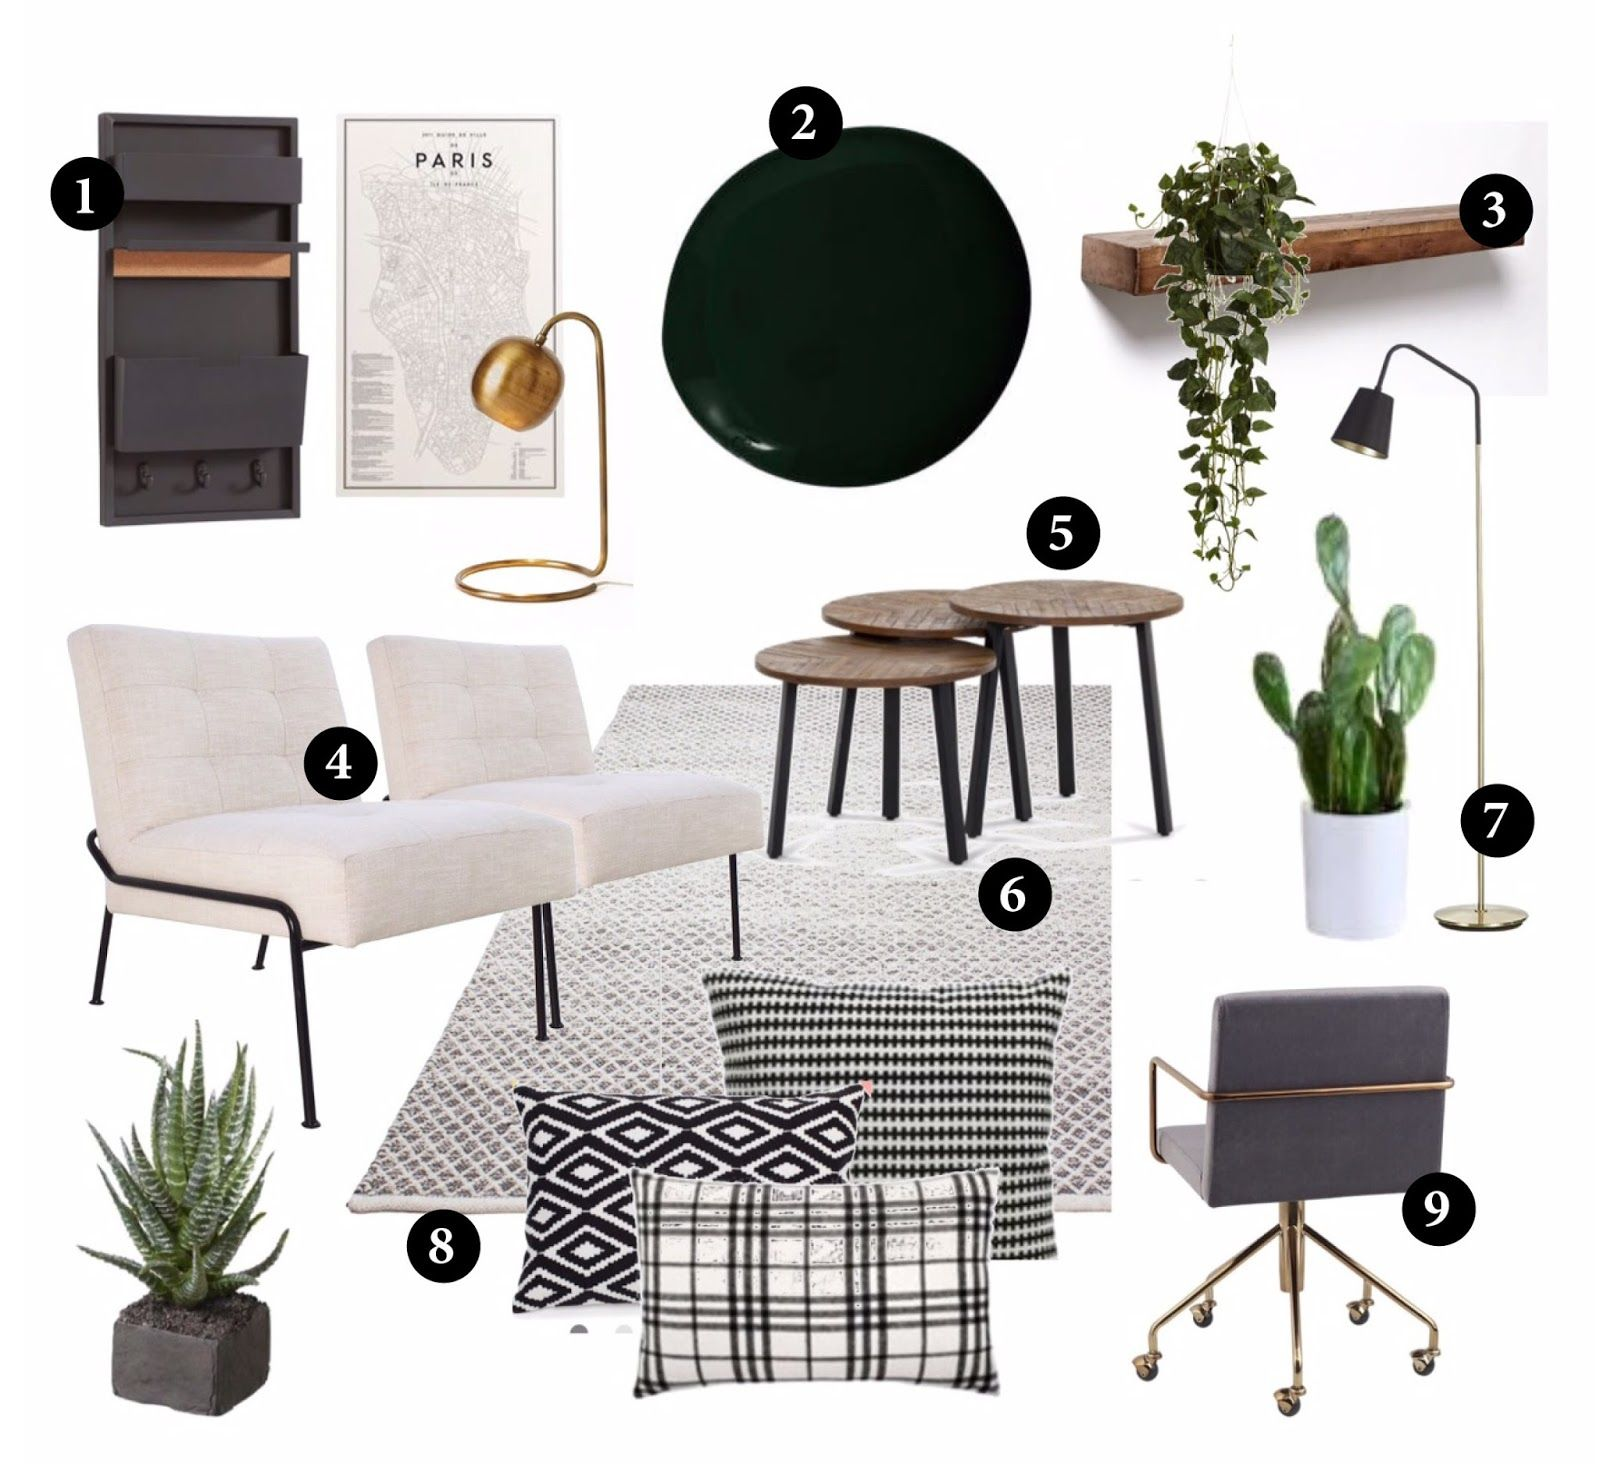 22 Scandinavian Home Office Designs Decorating Ideas: Moody Scandinavian Chic